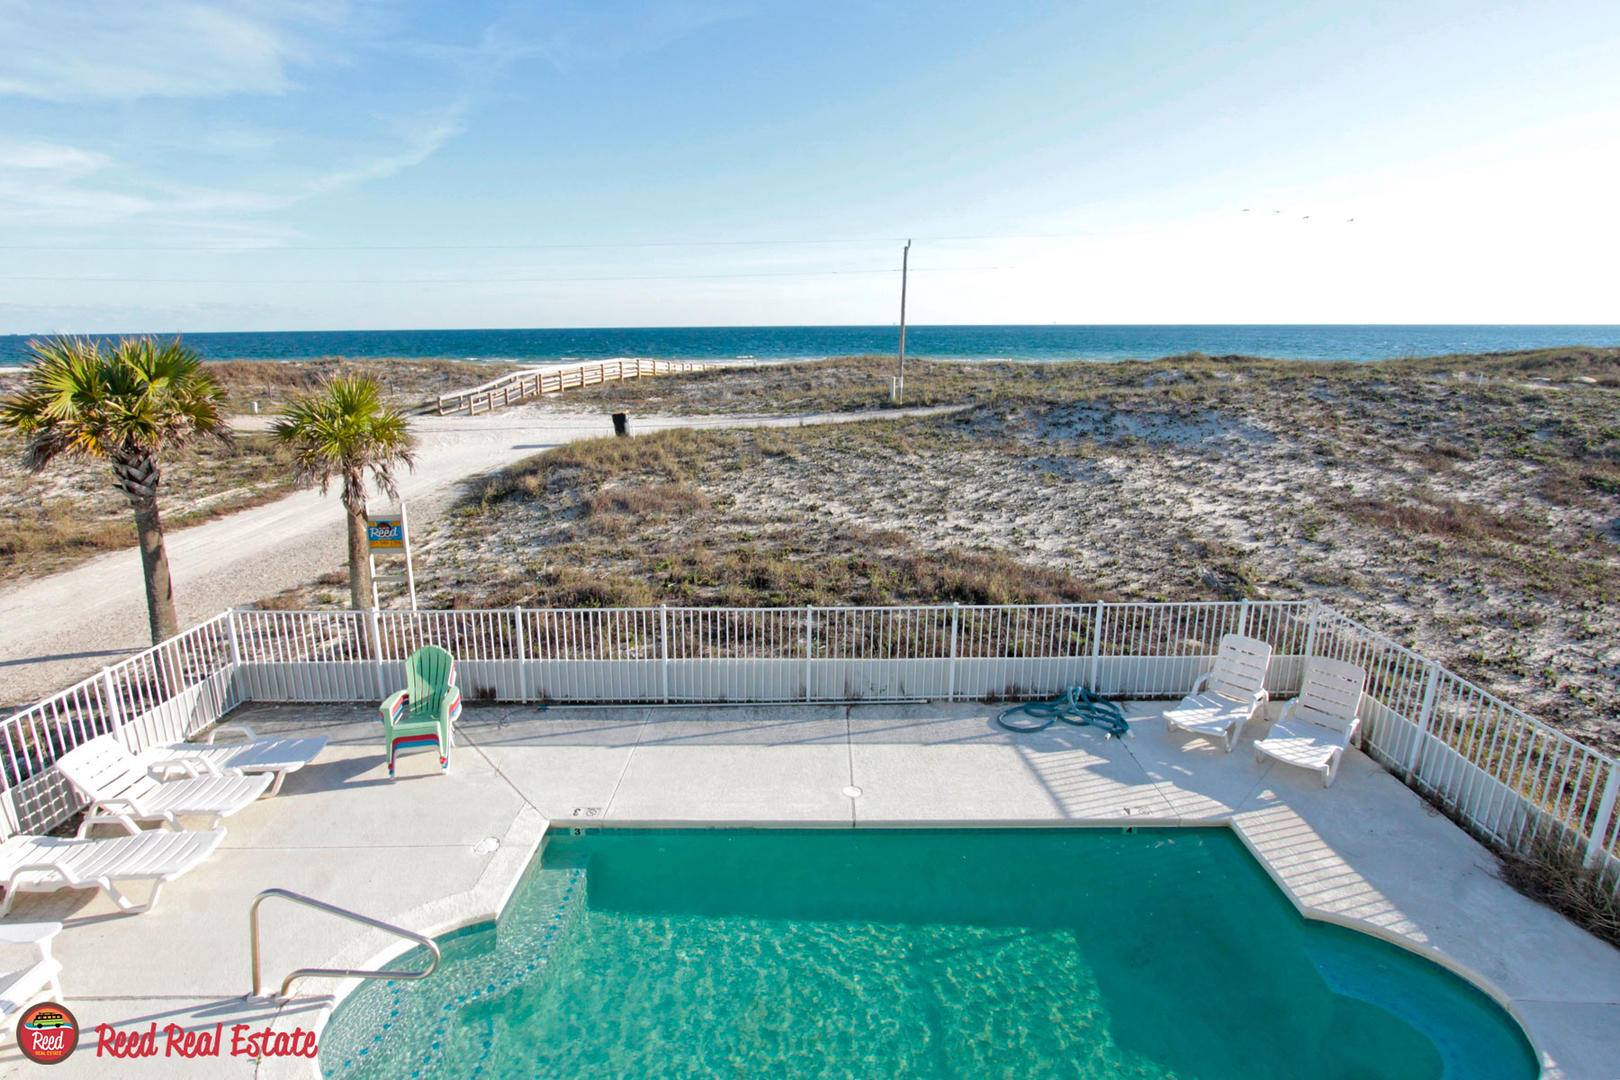 Reed-Real-Estate-Gulf-Shore-Beach-House-Alabama